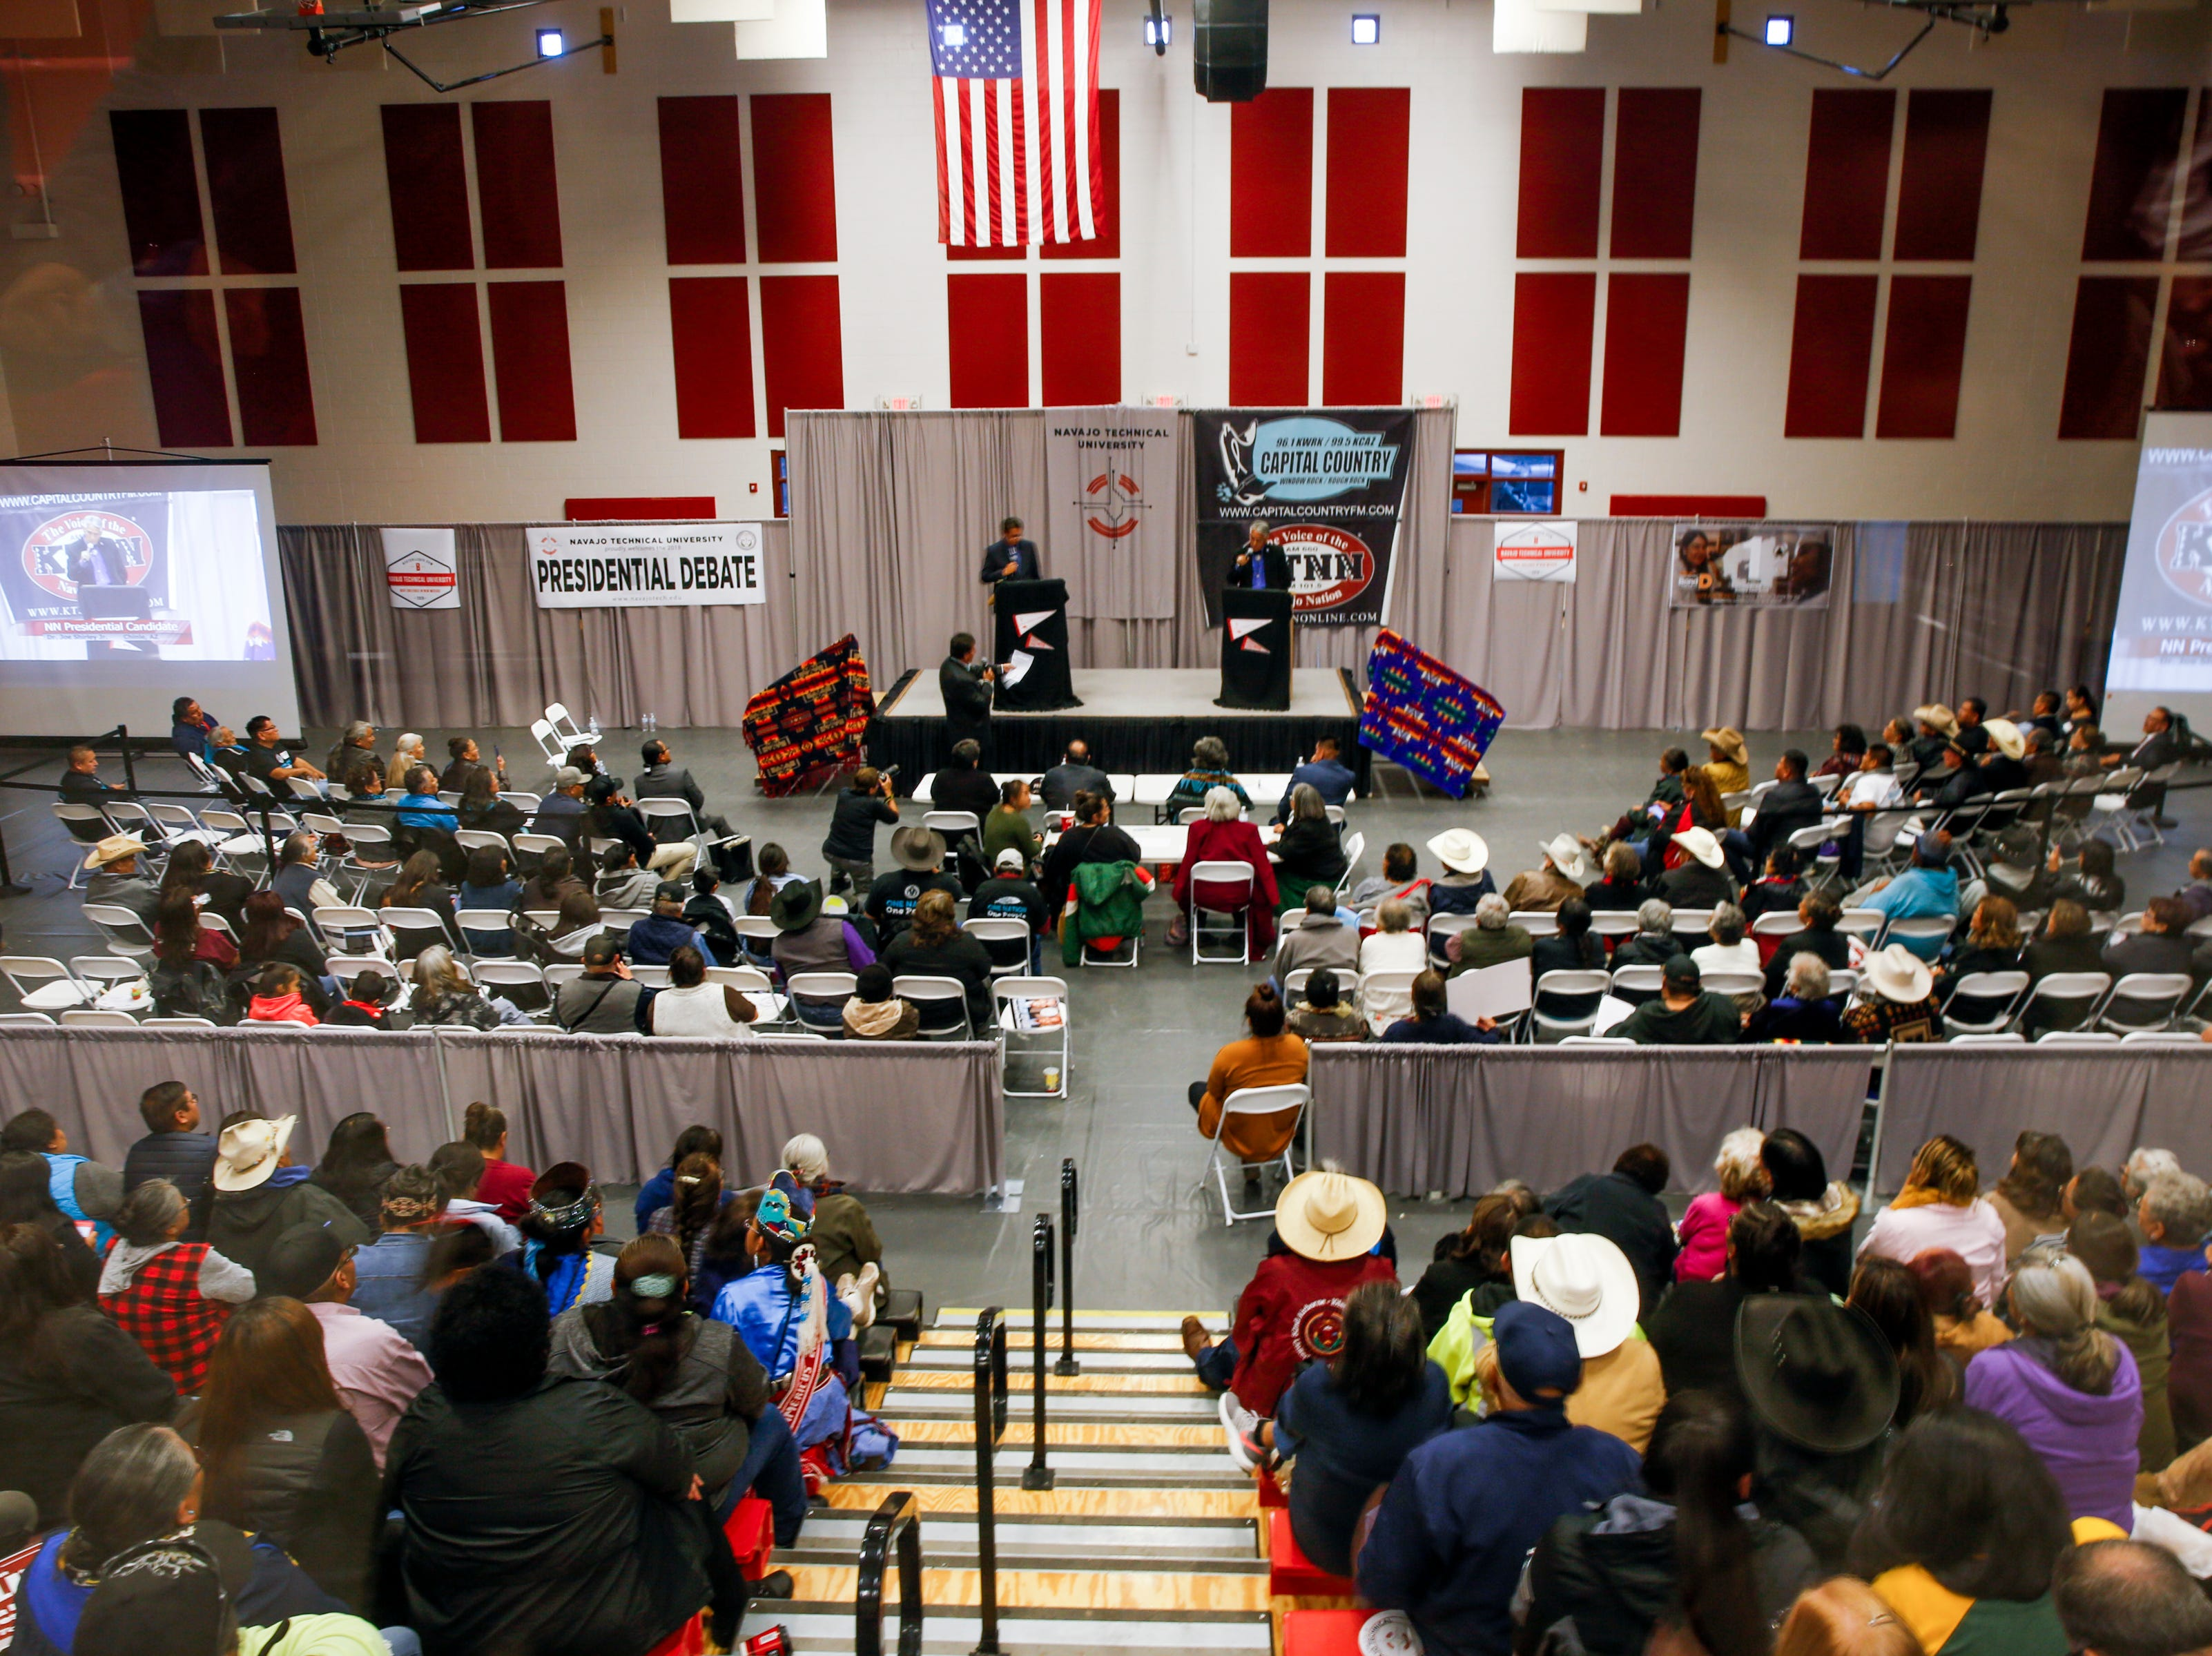 Navajo Nation Presidential candidates, Jonathan Nez and Joe Shirley Jr., participated in a debate Tuesday, Oct. 16, 2018 at Navajo Technical University's    Wellness Center in Crownpoint.